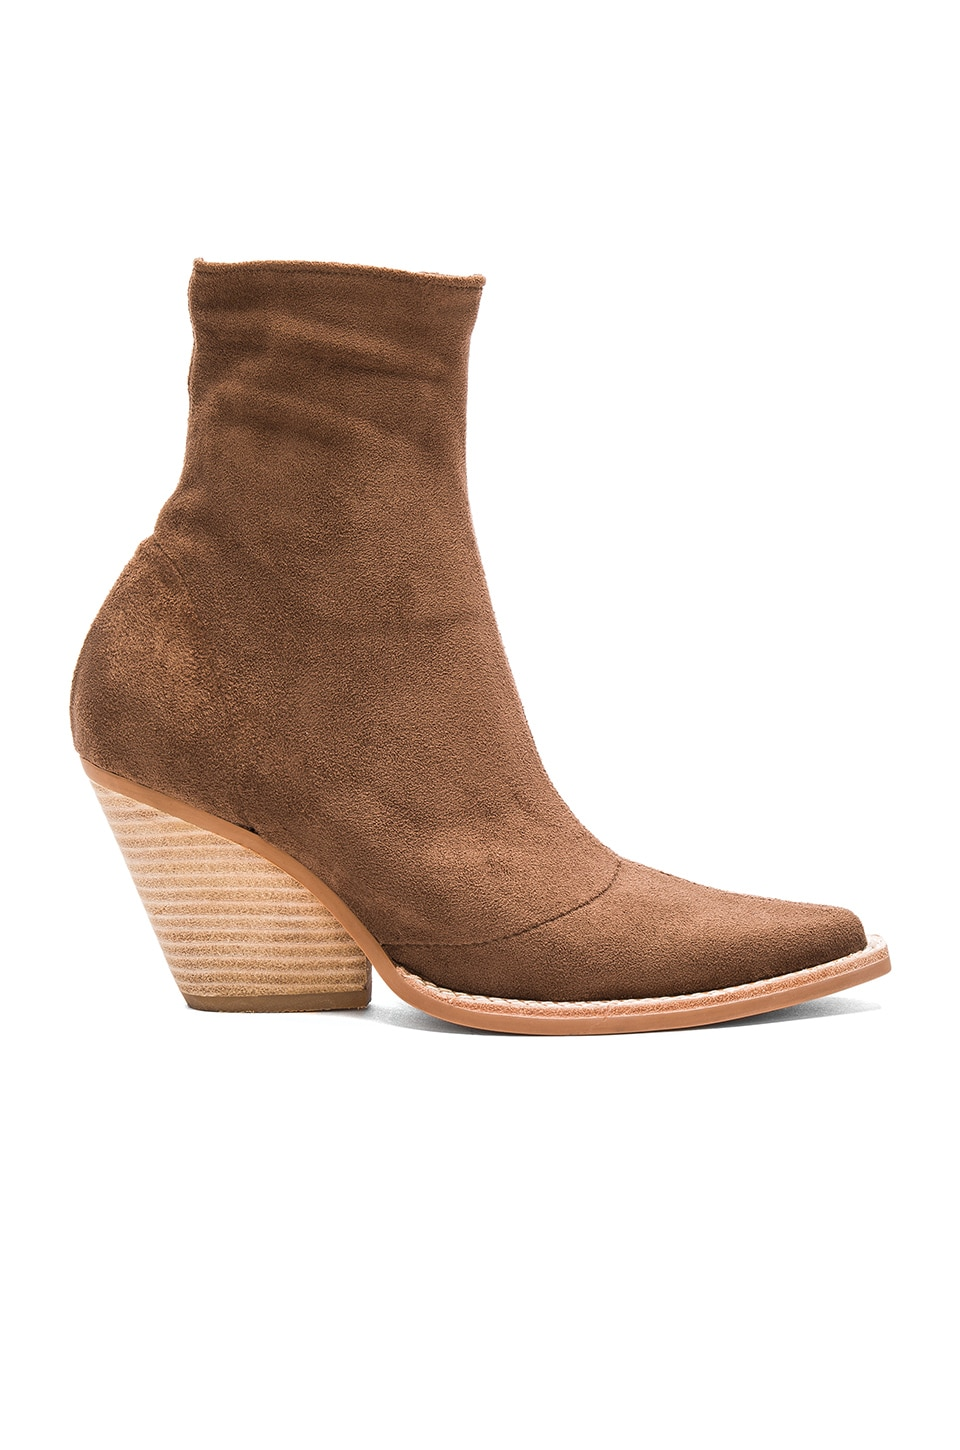 Jeffrey Campbell Walton Booties in Brown Suede